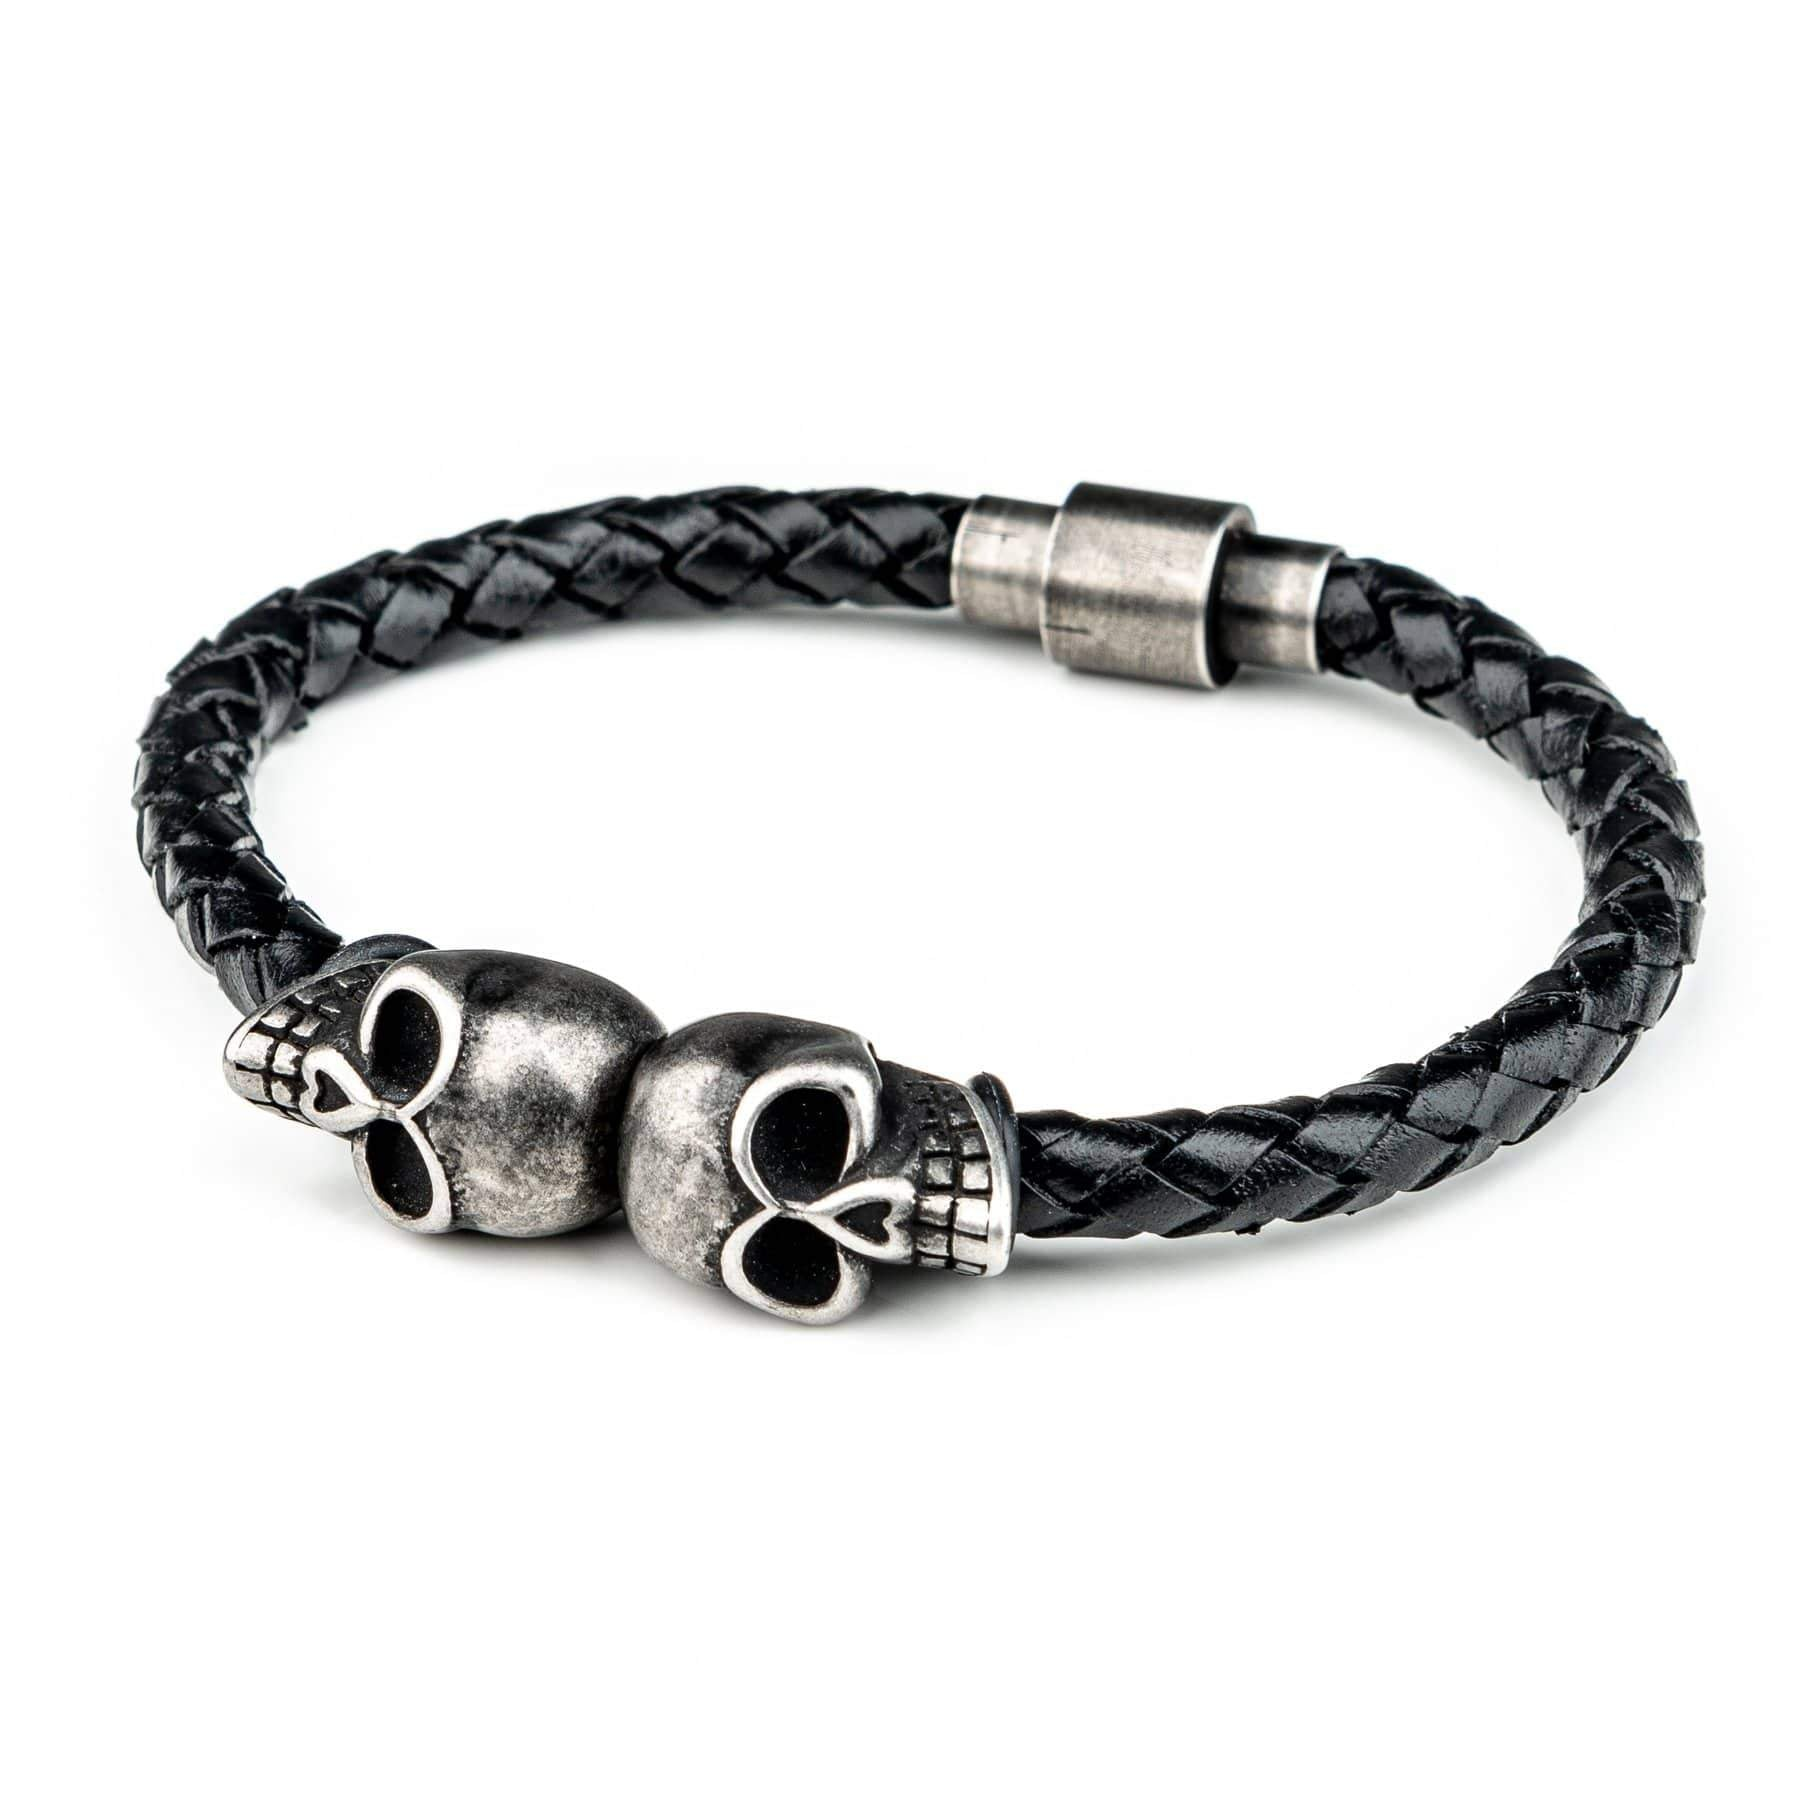 Wornstar Clothing Challenger stainless steel skull bracelet with leather cord.